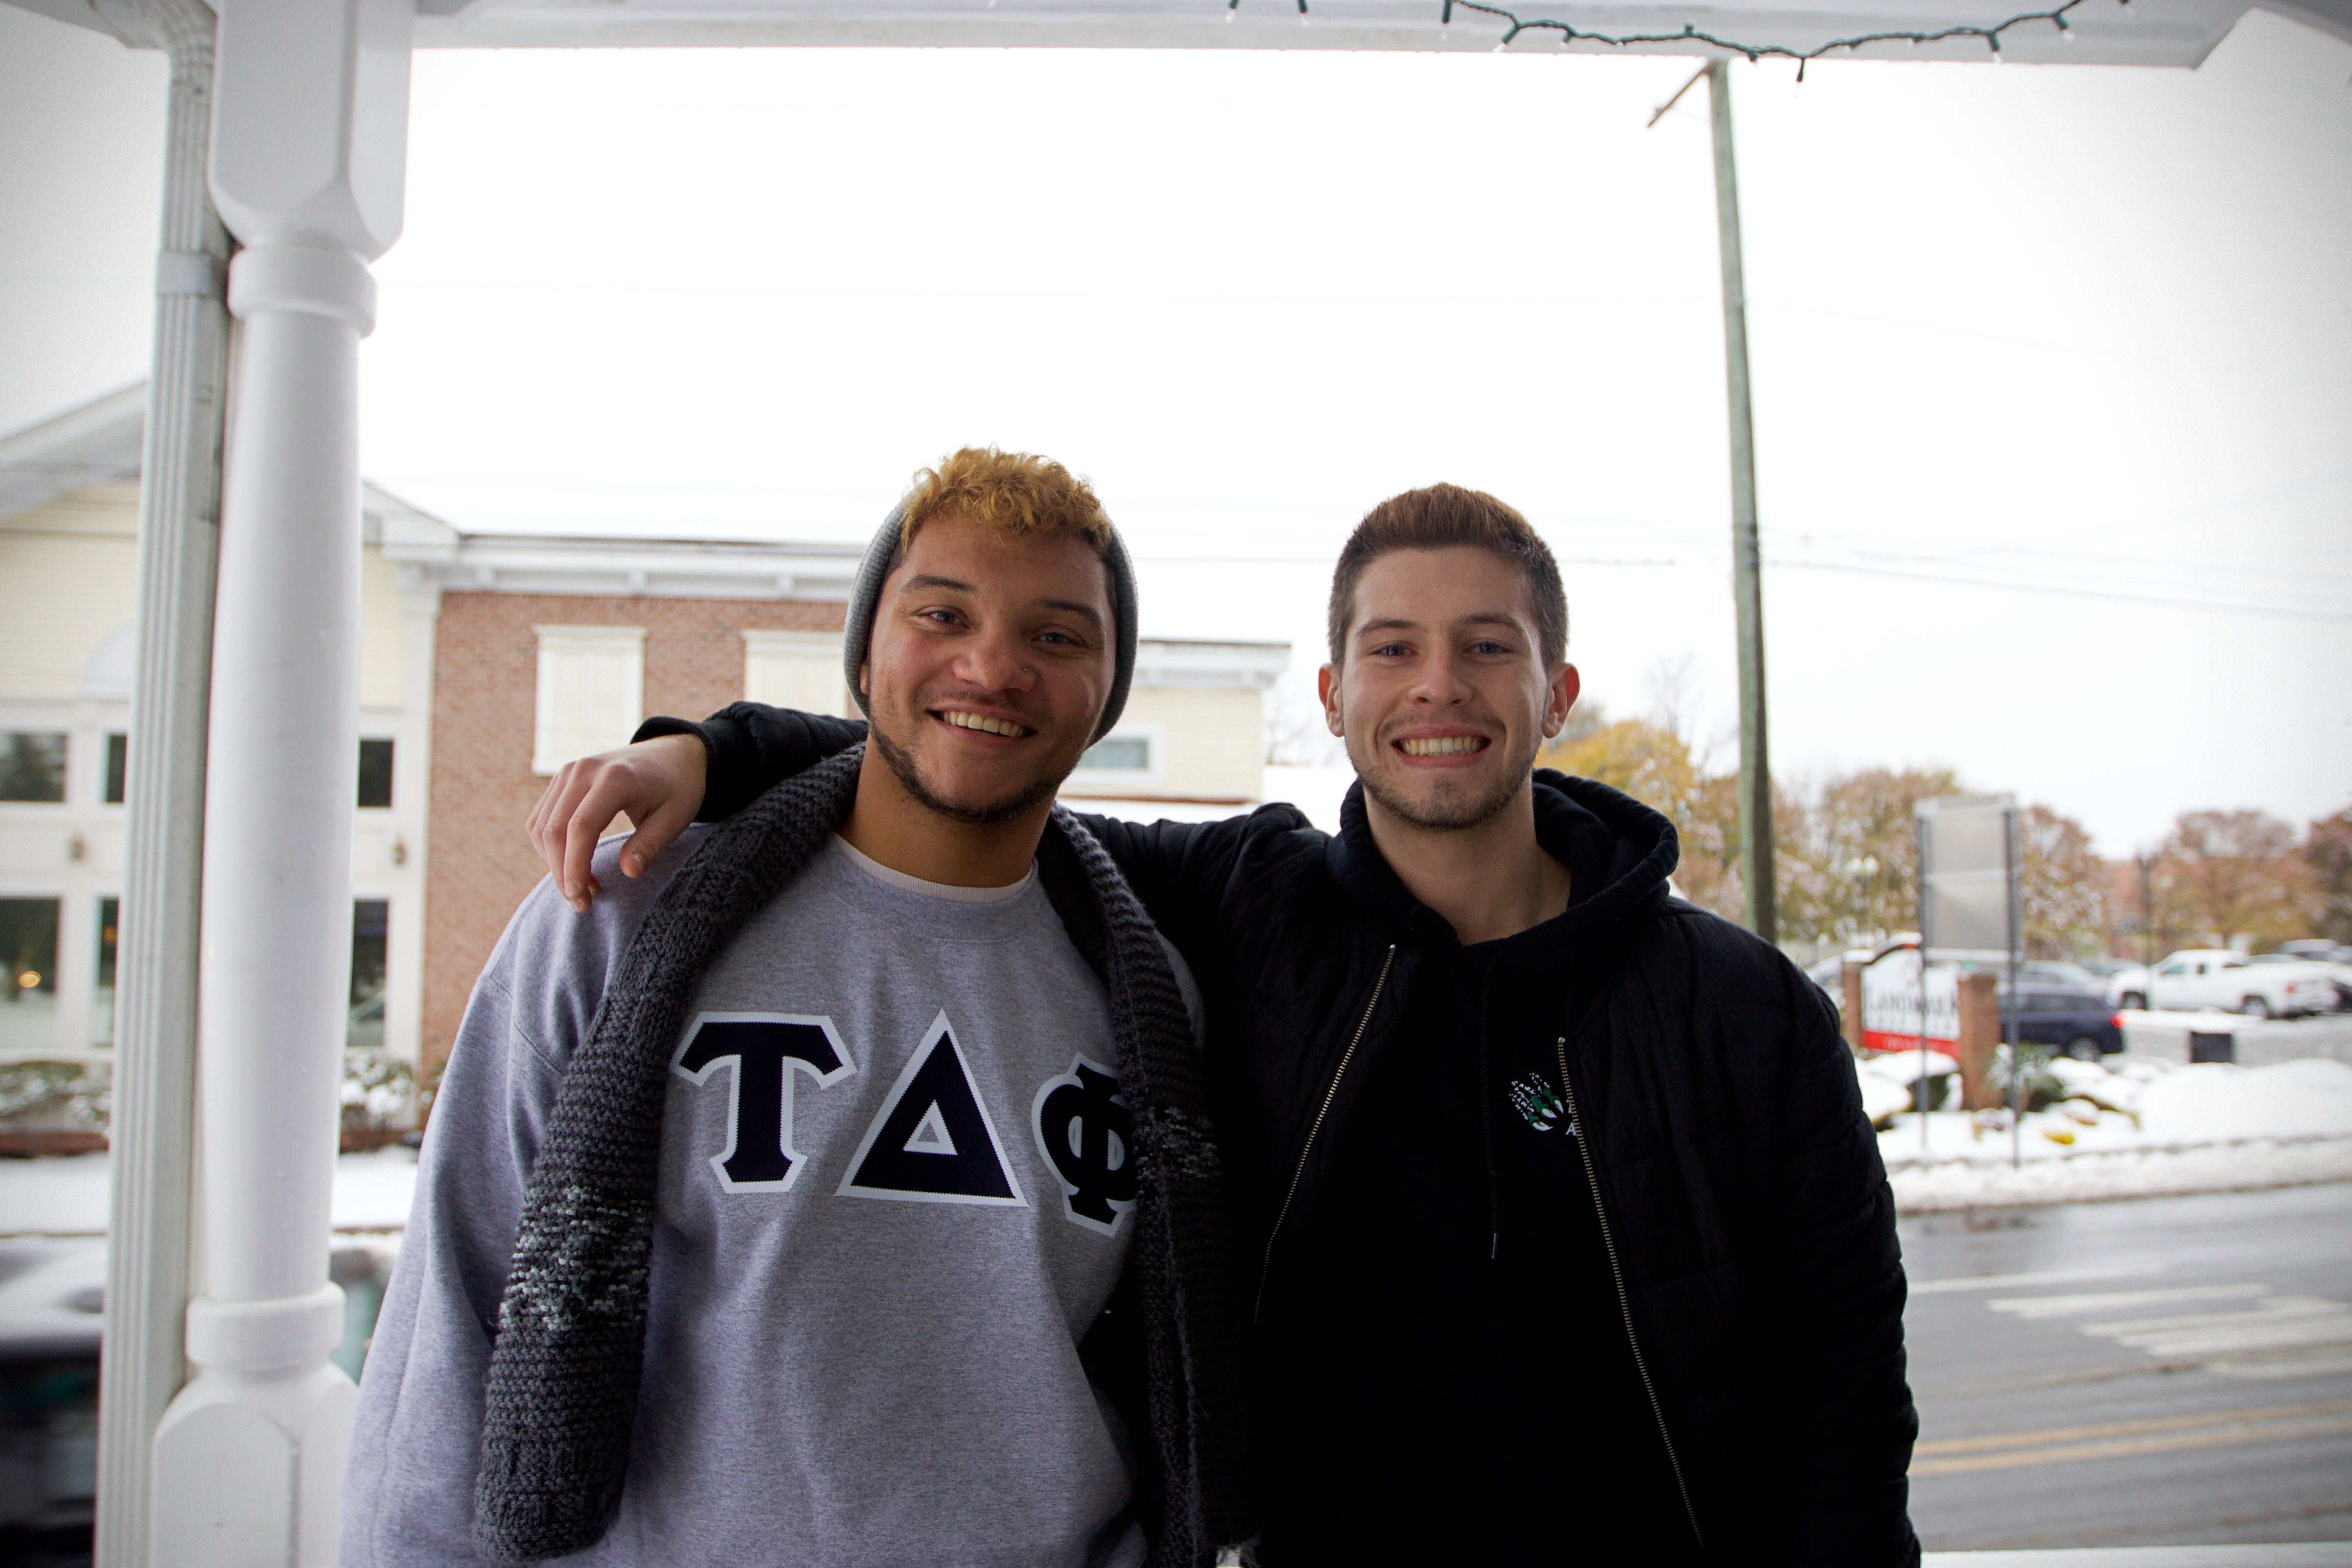 Joe (right) poses with his fraternity brother, James (left), outside their home.